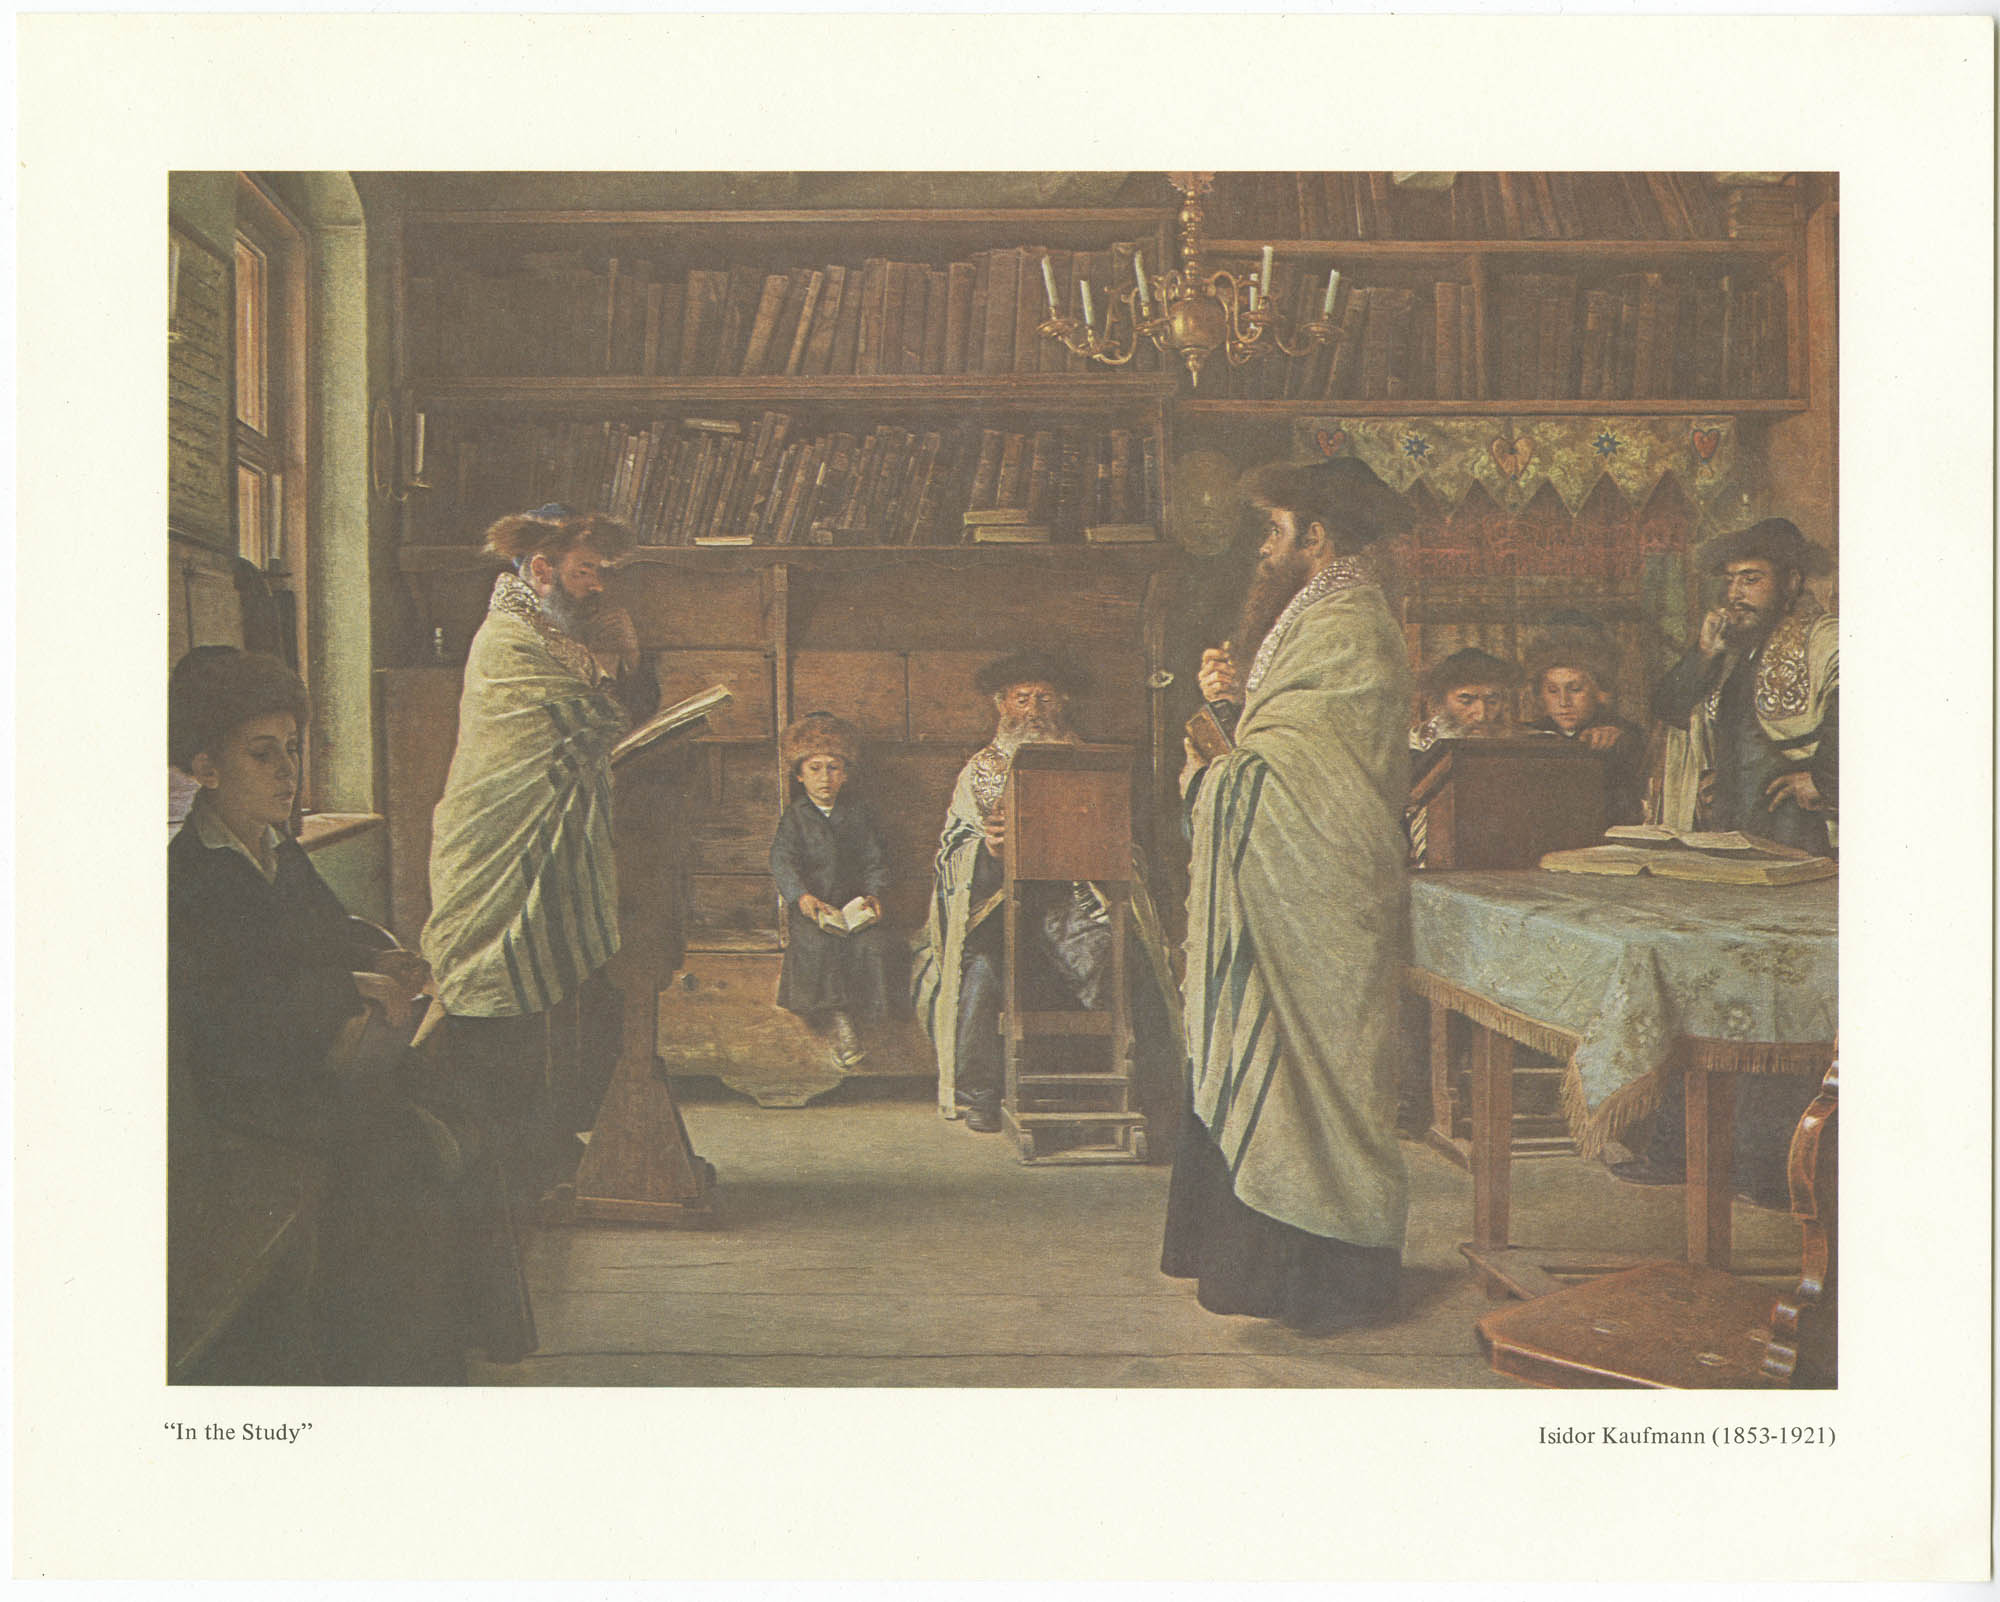 In the Study